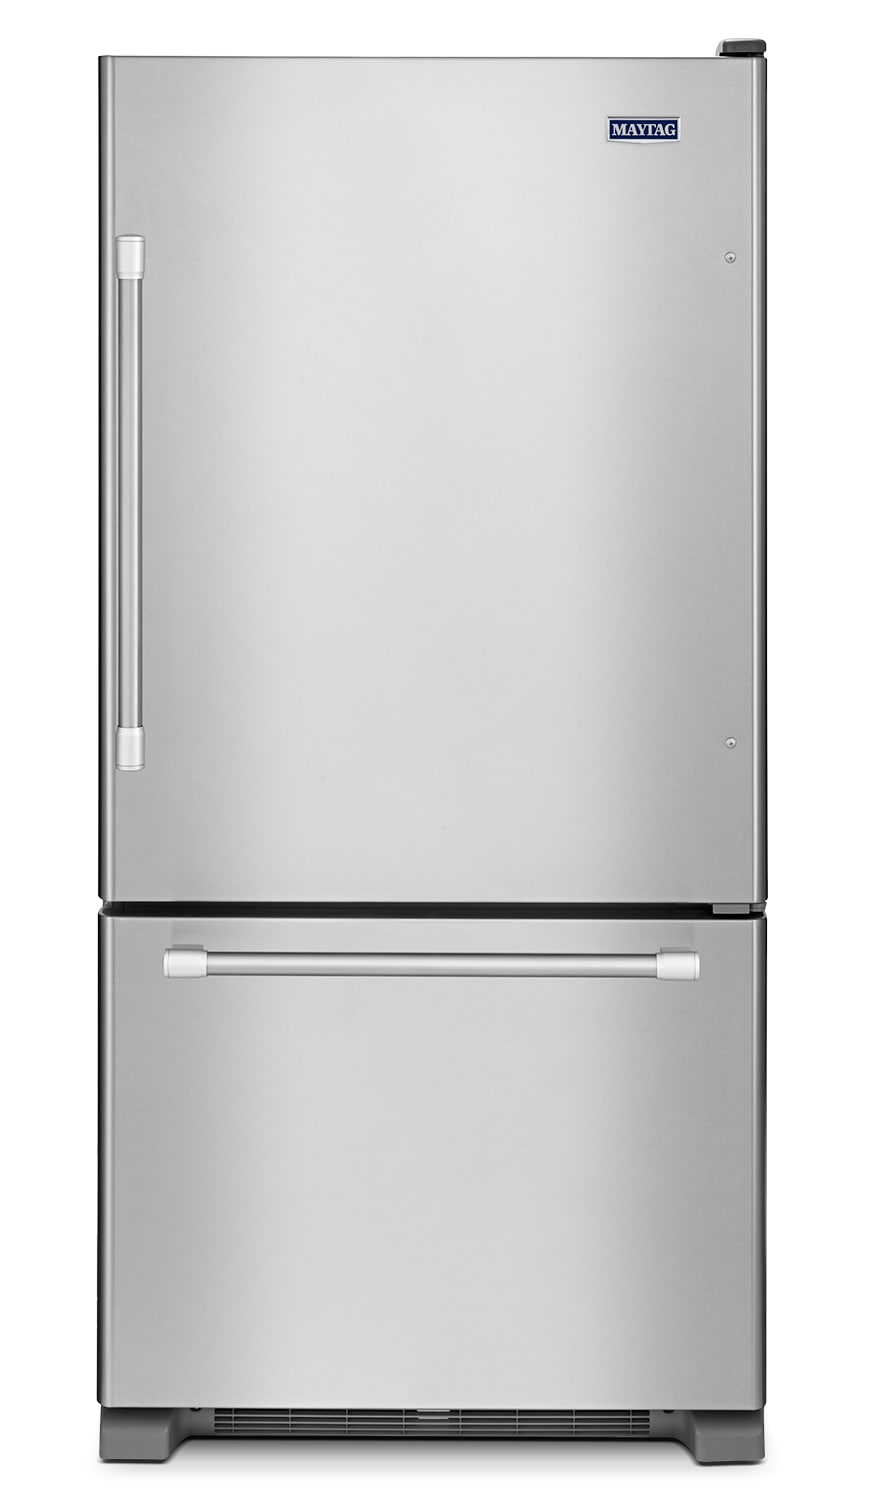 Refrigerators and Freezers - Maytag Stainless Steel Bottom-Freezer Refrigerator (18.5 Cu. Ft.) - MBR1957DEM